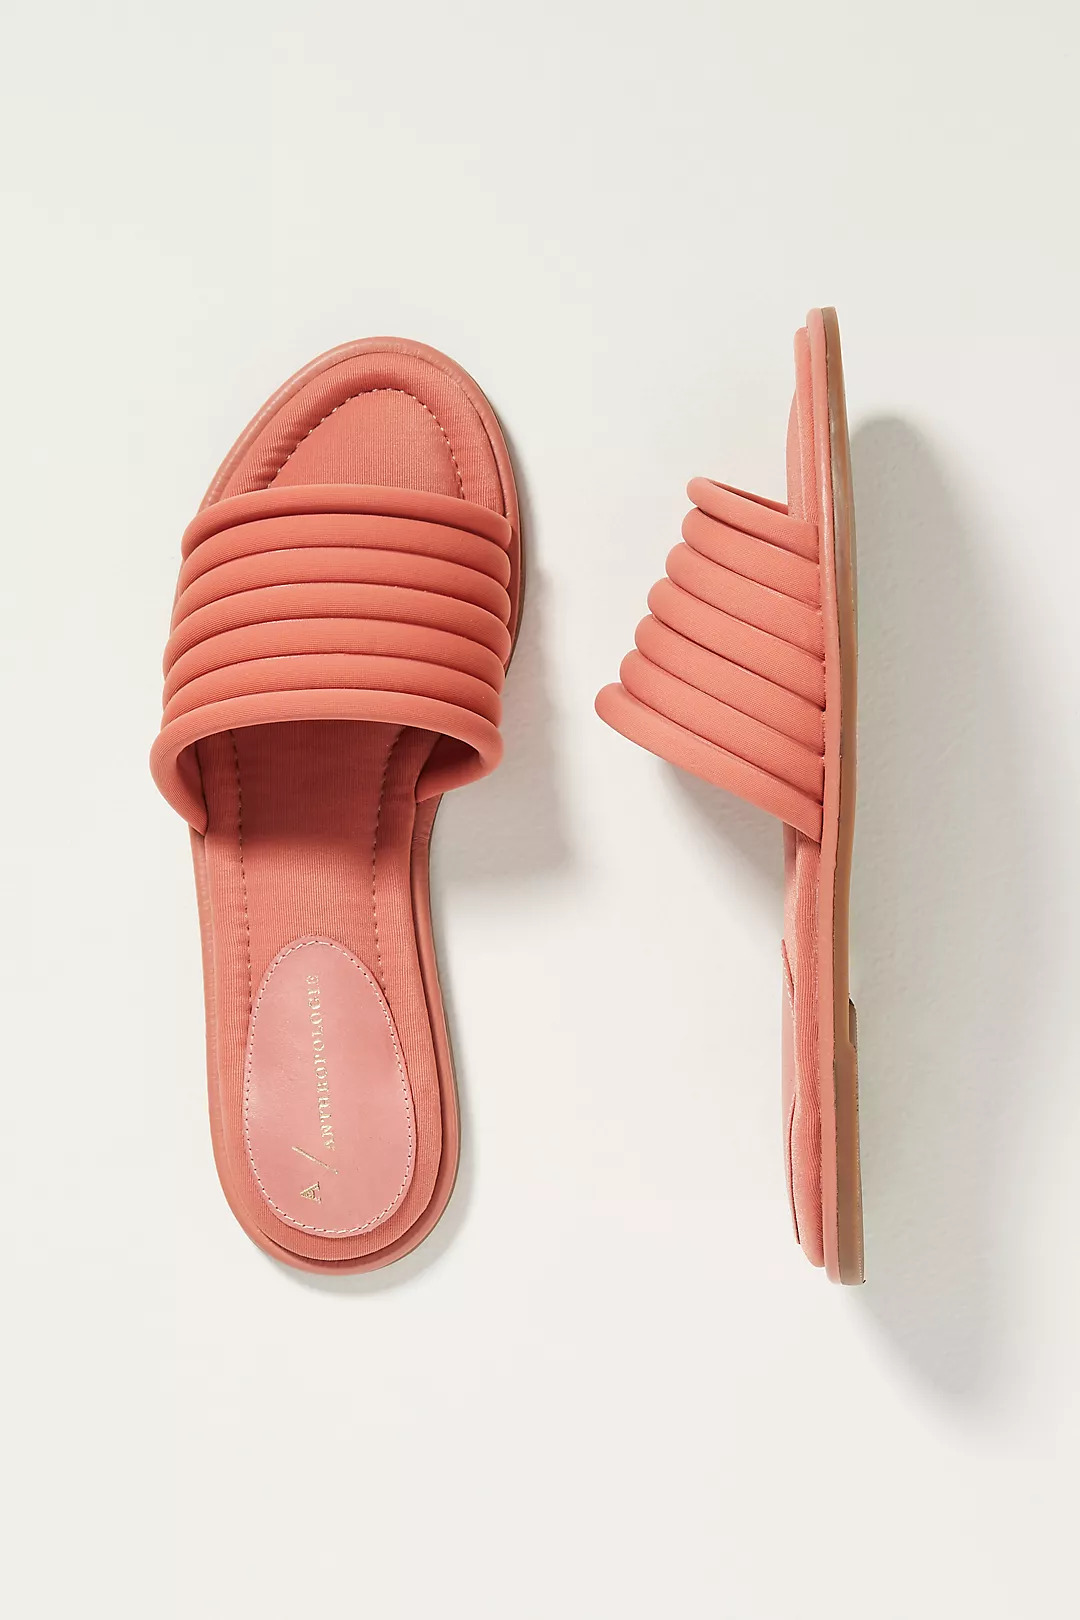 Anthropologie Ilana Puffy Slide Sandals